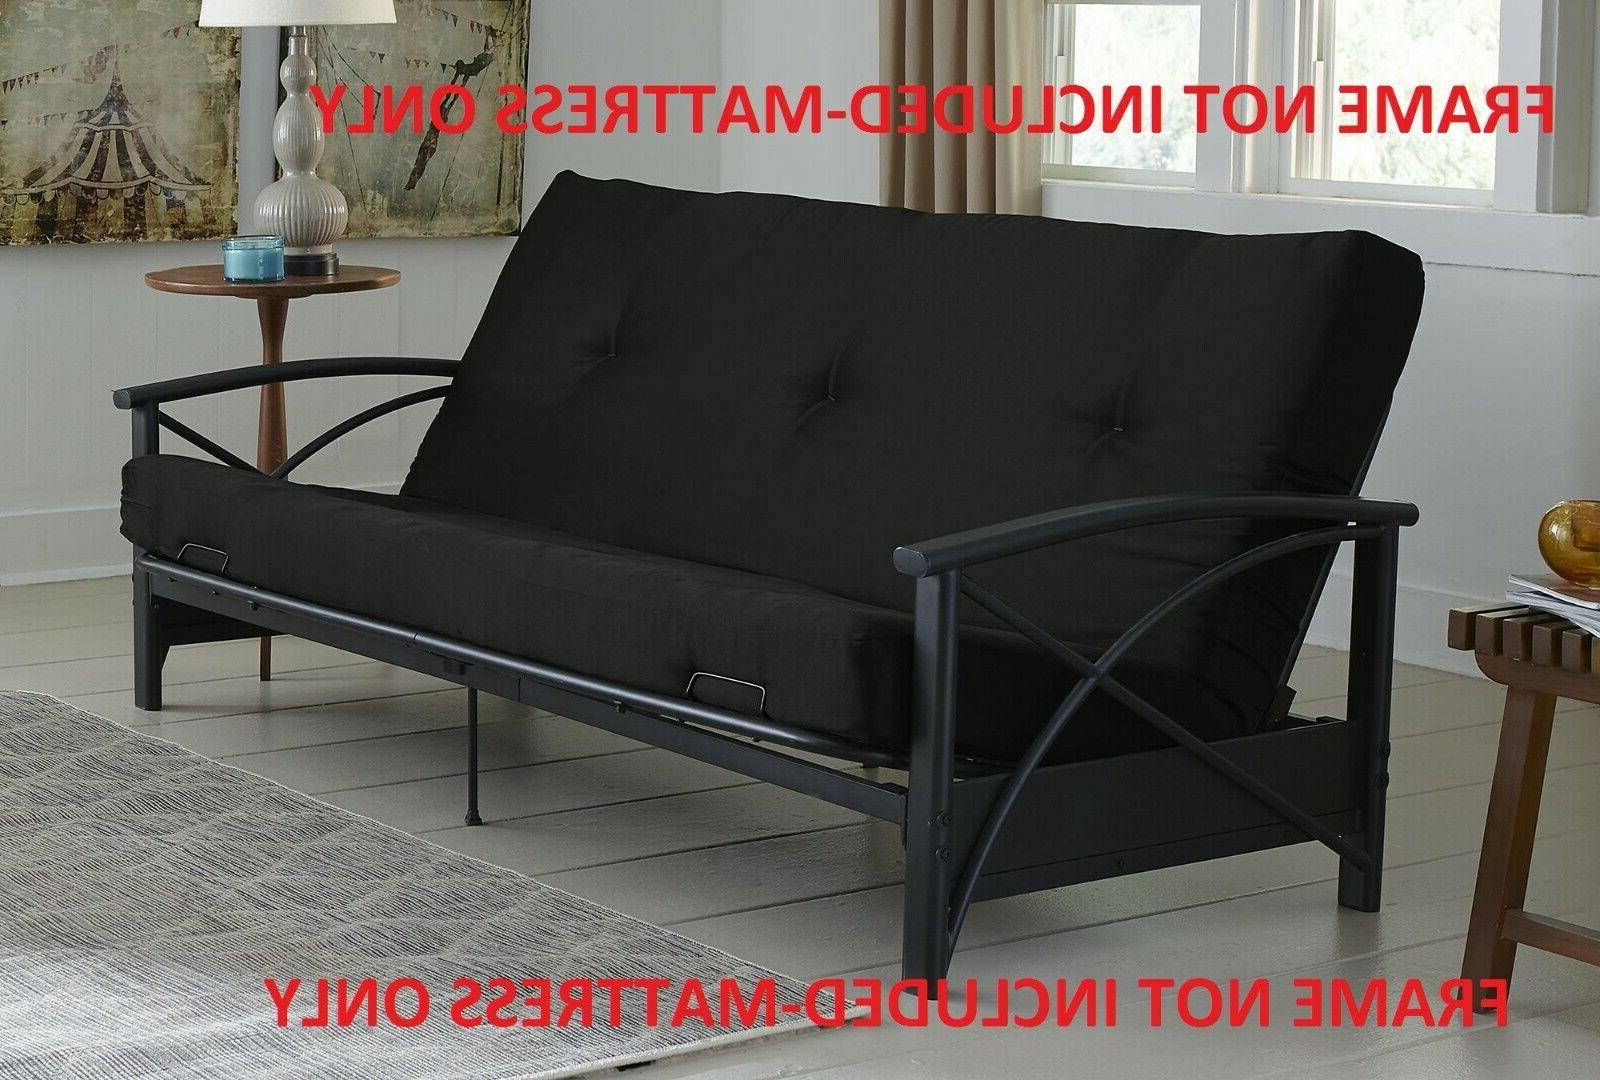 futon mattress guest spare room sofa bed